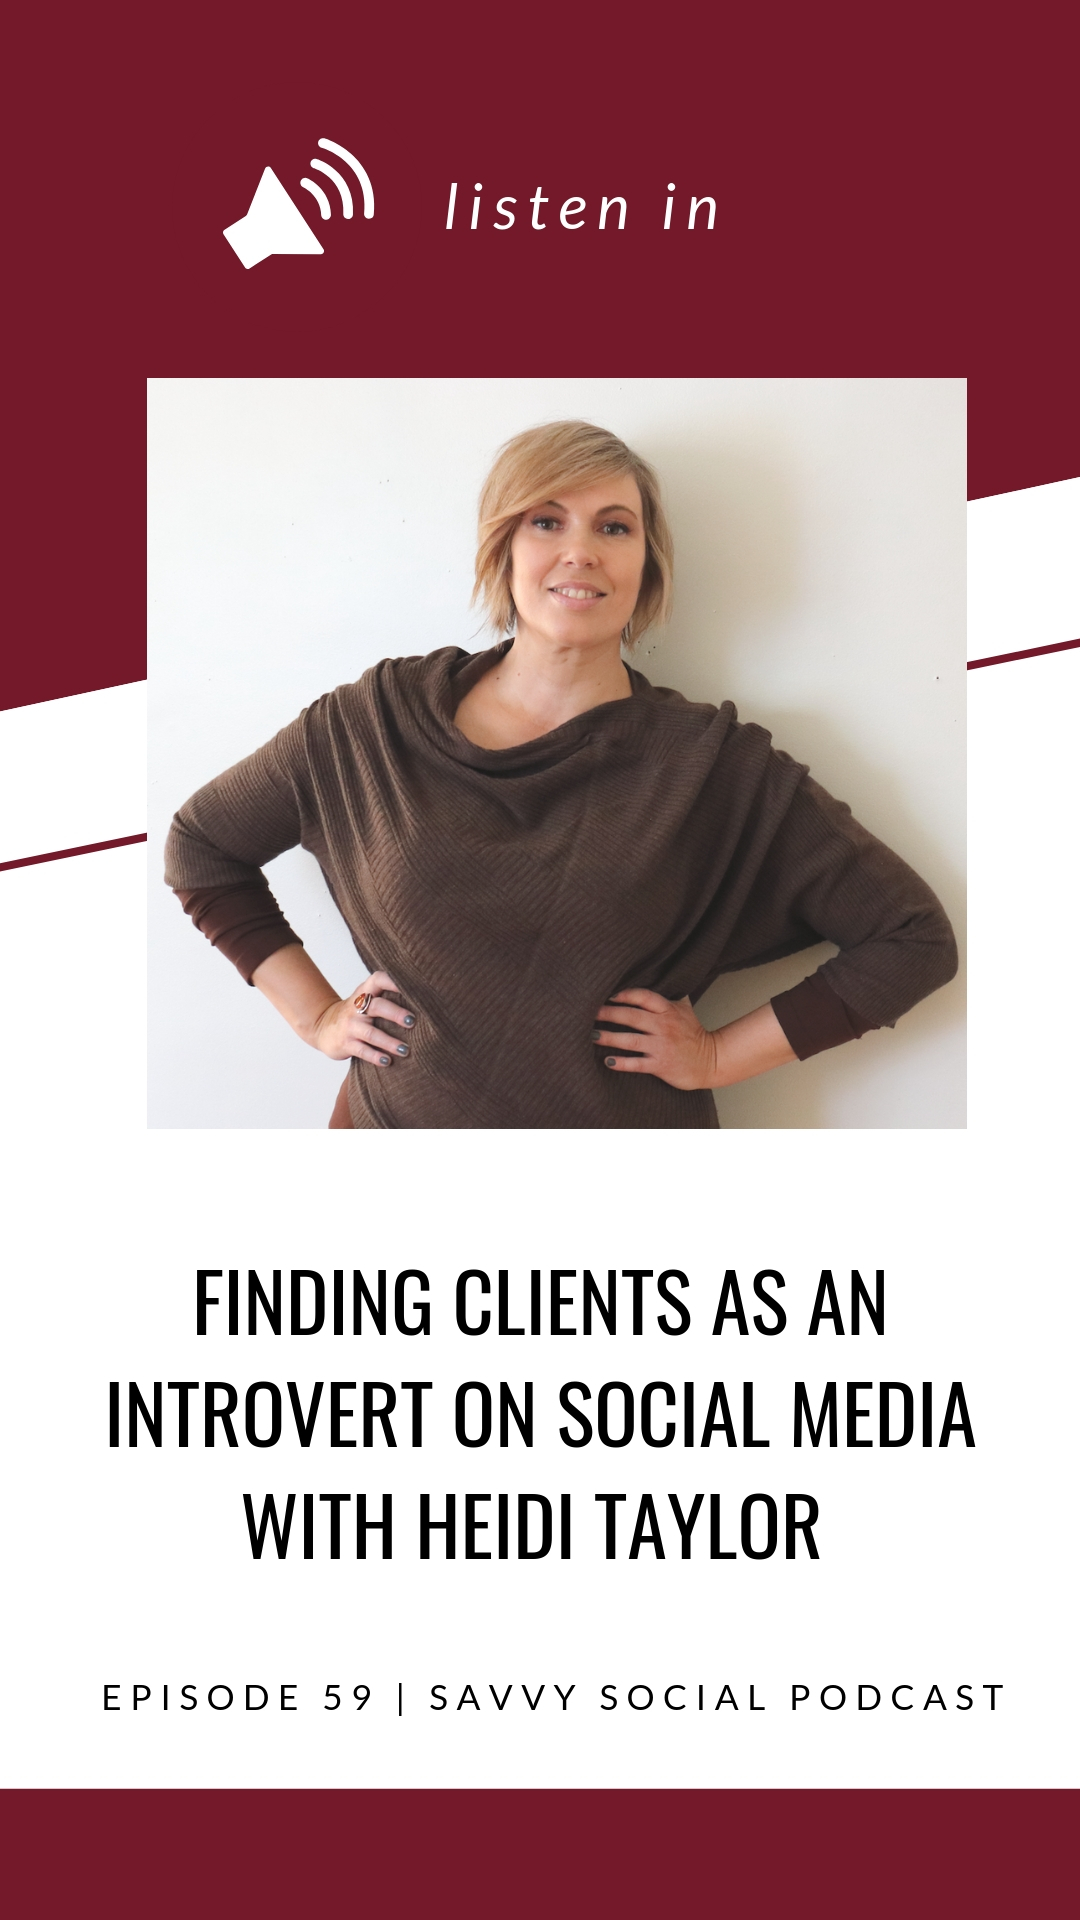 Finding Clients as an Introvert on Social Media with Heidi Taylor